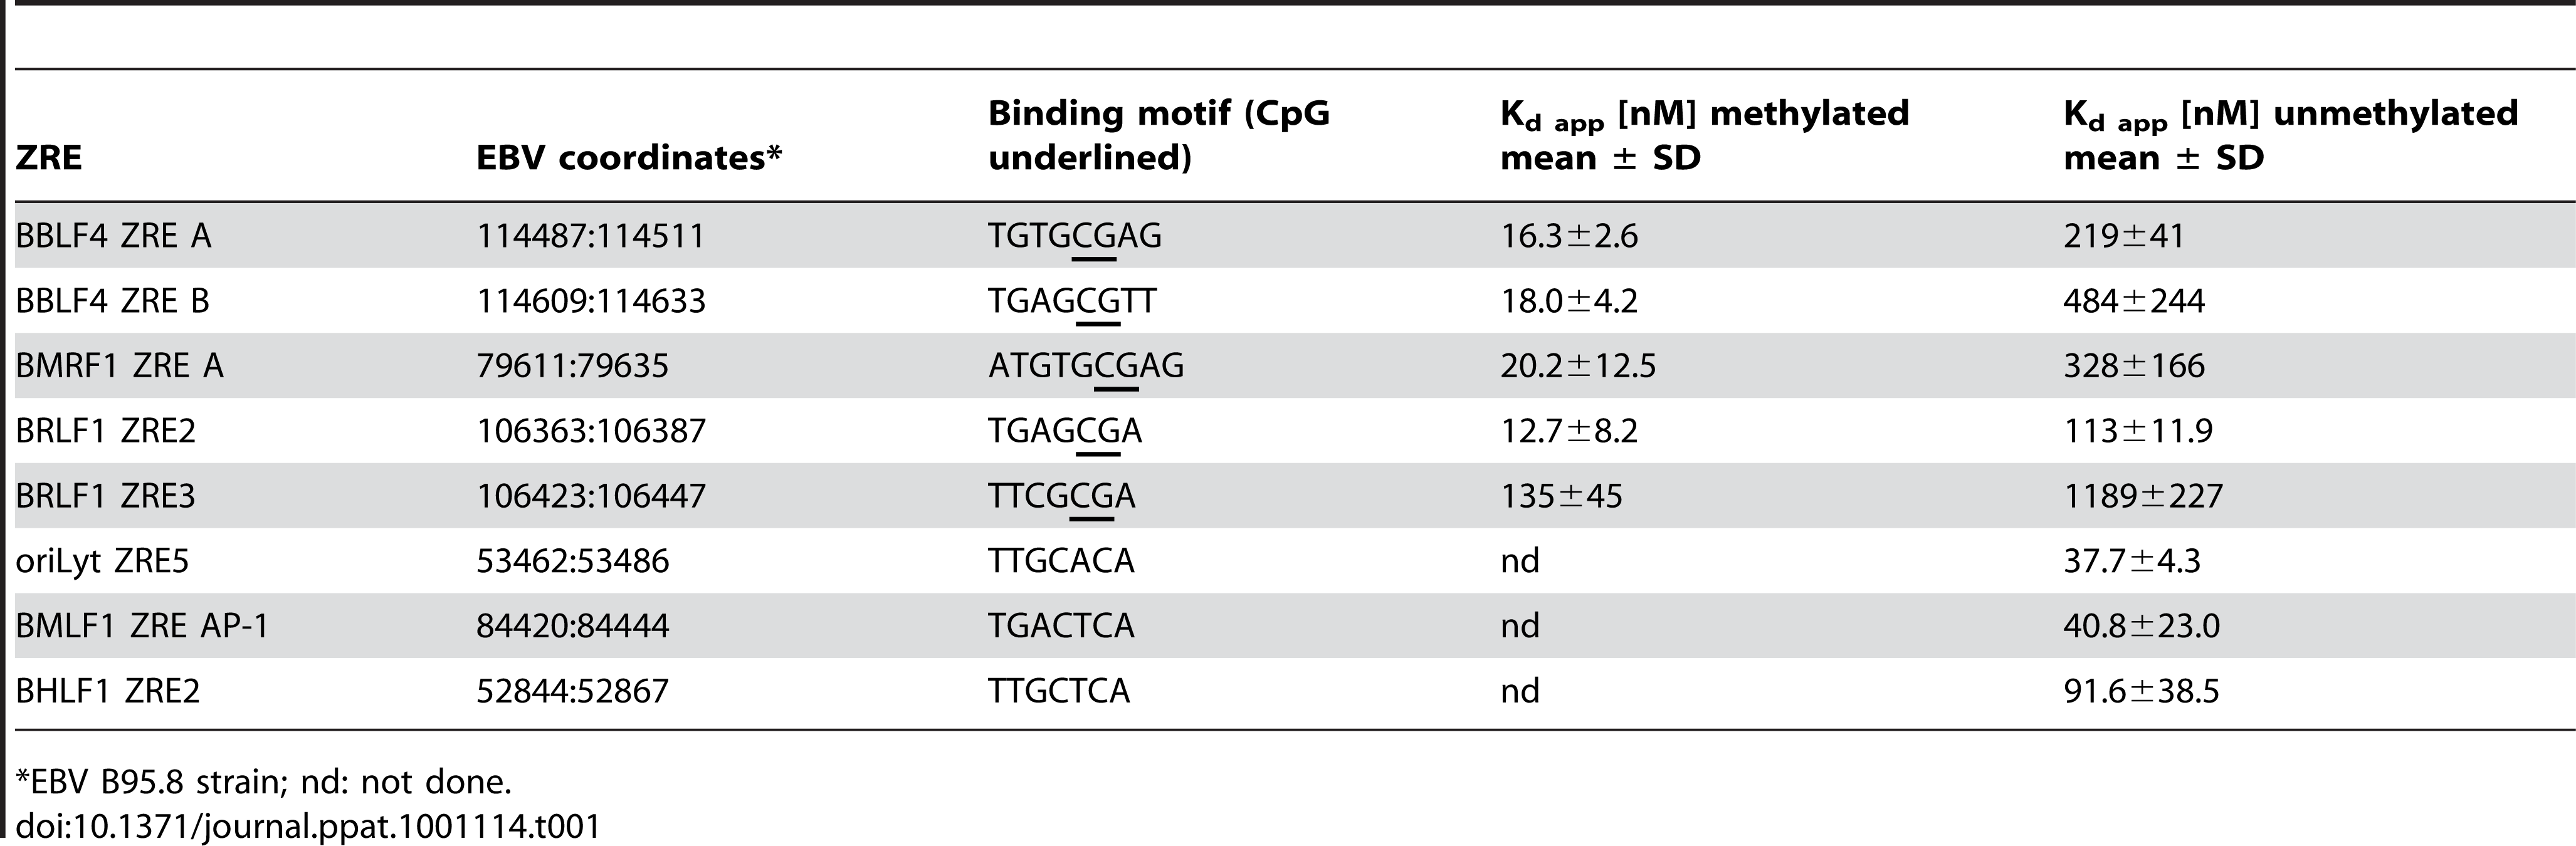 Binding affinities of Zta to selected unmethylated and CpG-methylated ZREs.